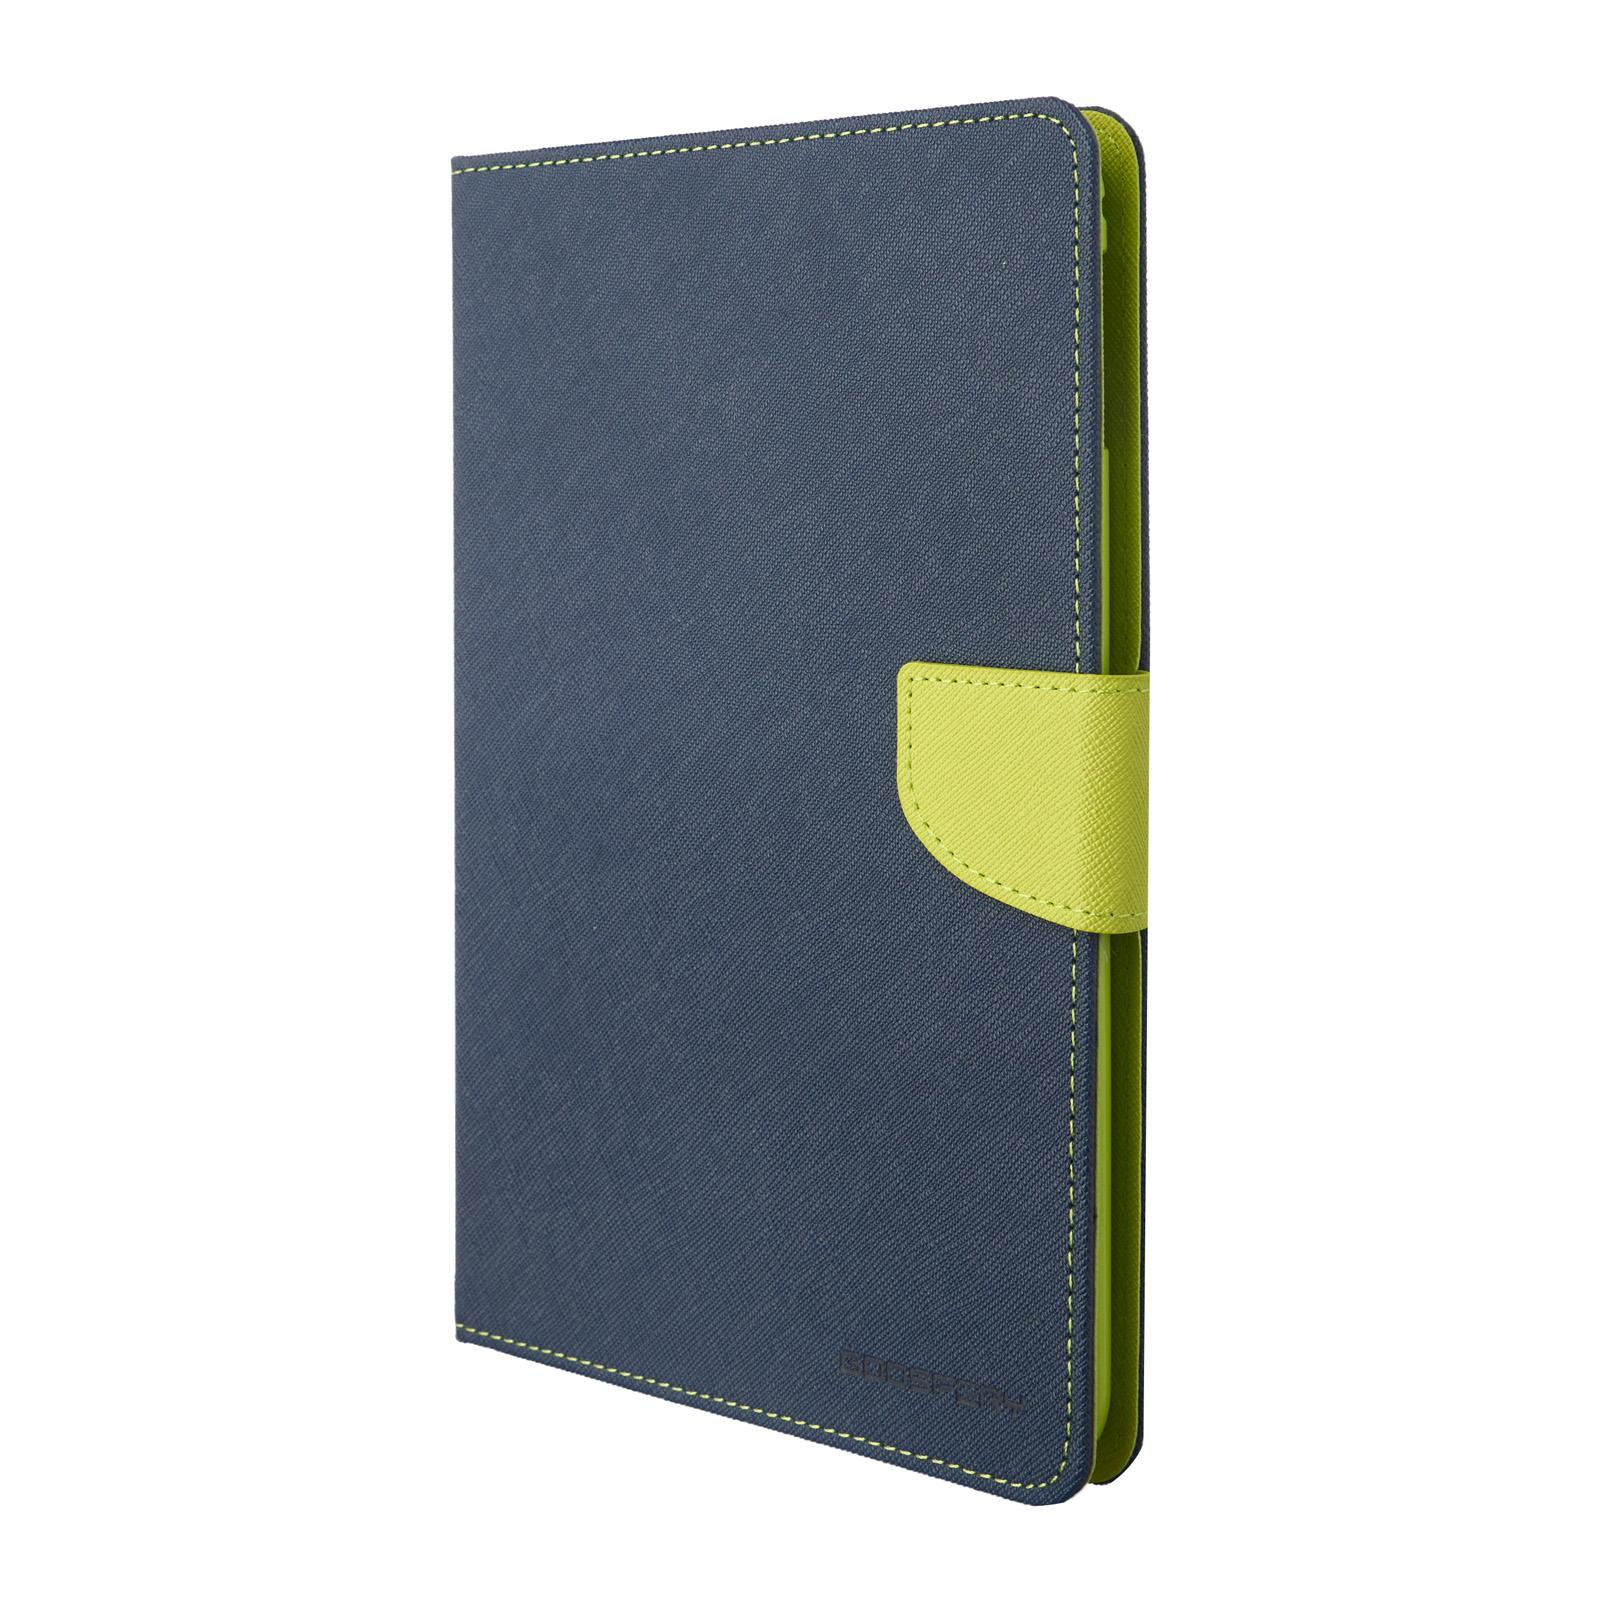 Pouzdro / kryt pro Apple iPad mini 4 - Mercury, Fancy Diary Navy/Lime